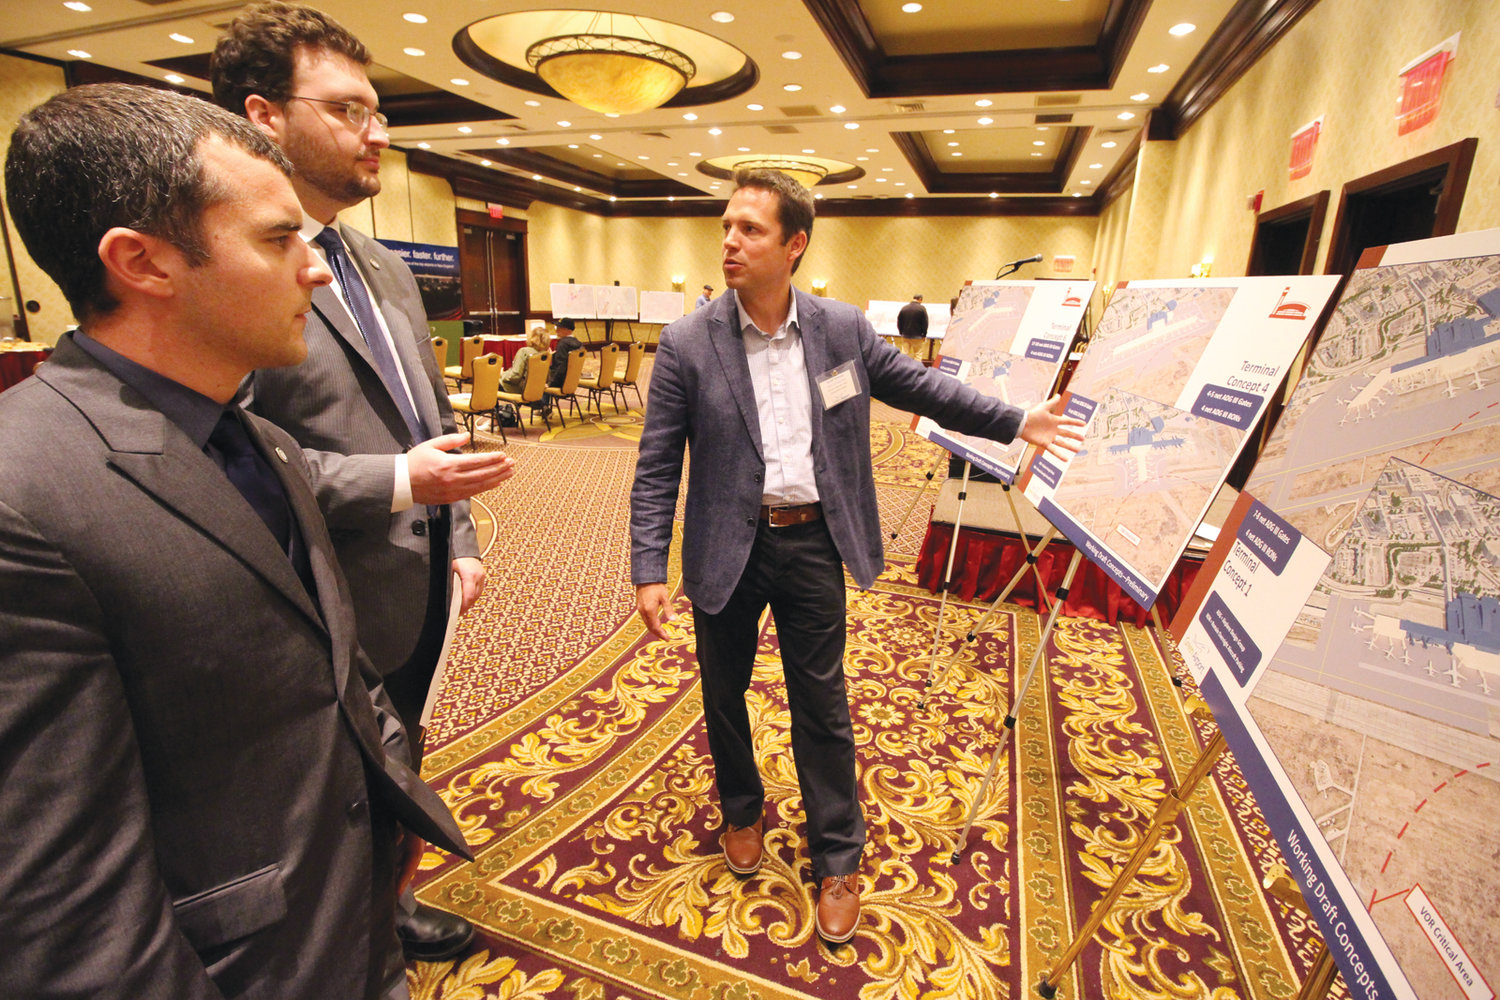 A BIGGER TERMINAL? Scott Tumolo of C&S reviews possible plans for the expansion of the Sundlun Terminal with Warwick City Council members Anthony Sinapi of Ward 8 and Jeremy Rix of Ward 2.